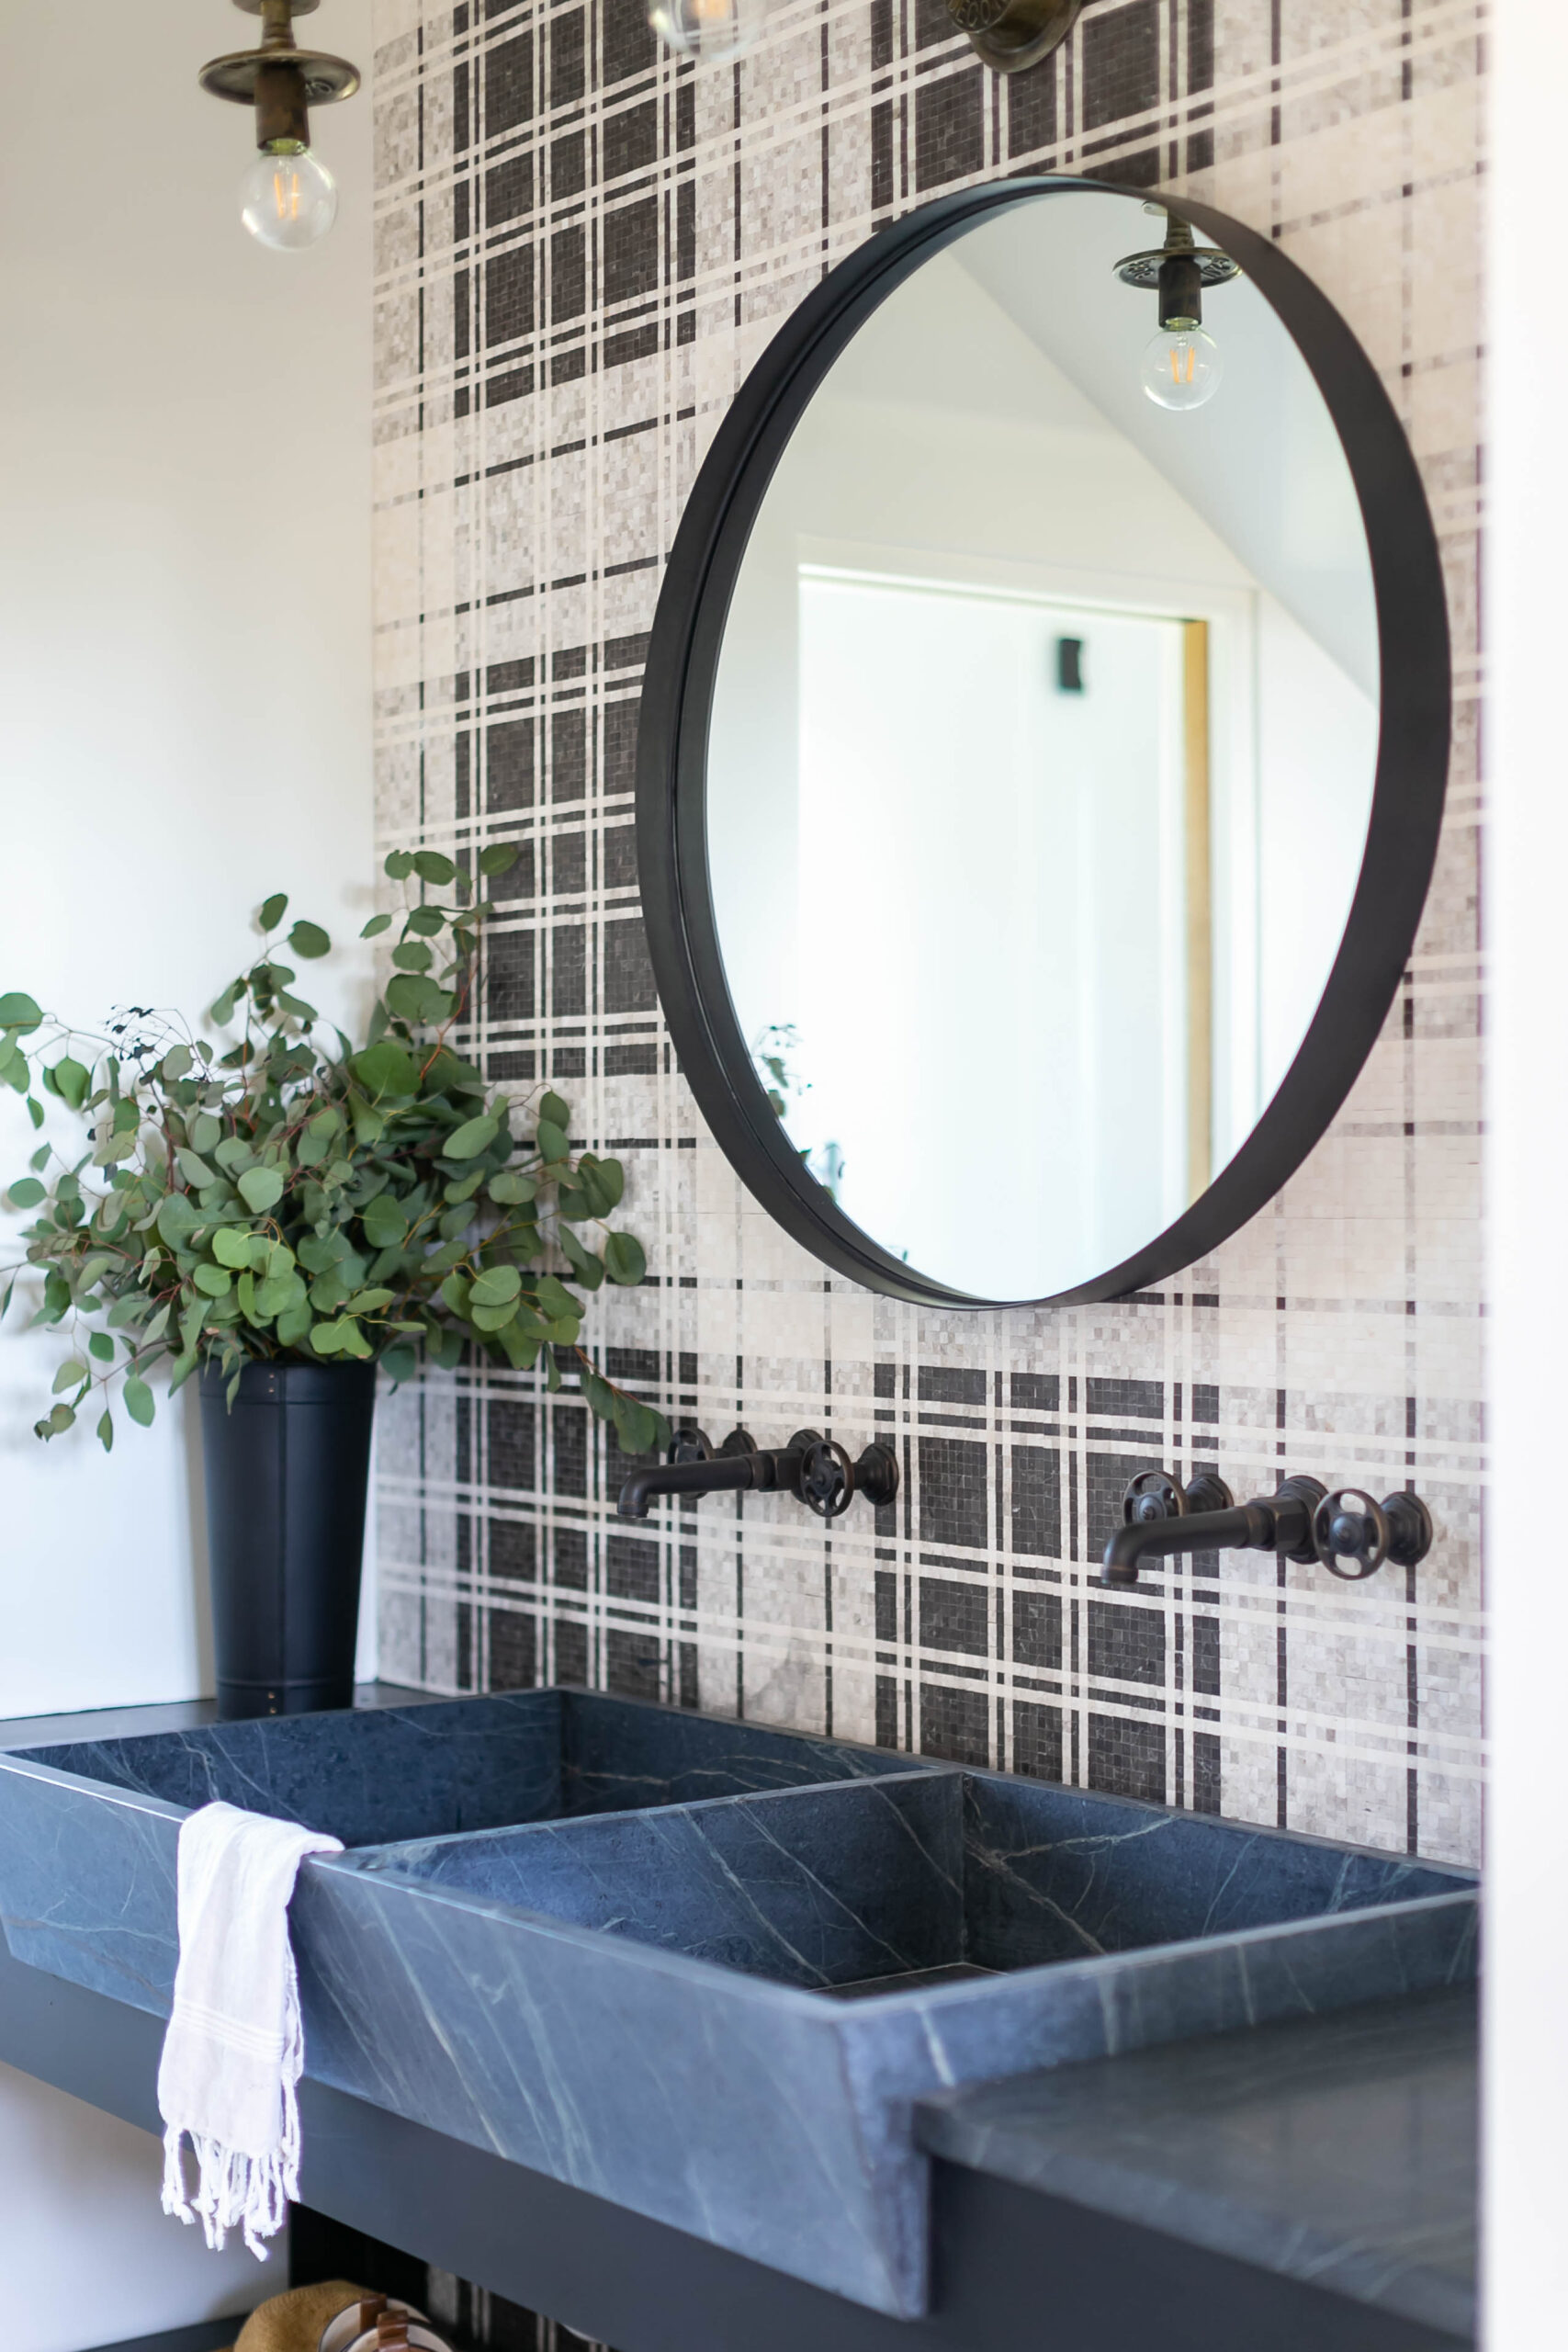 PROJECT SANTA YNEZ // PATTERSON CUSTOM HOMES // BRANDON ARCHITECTS // BLACKBAND DESIGN // RYAN GARVIN PHOTOGRAPHY